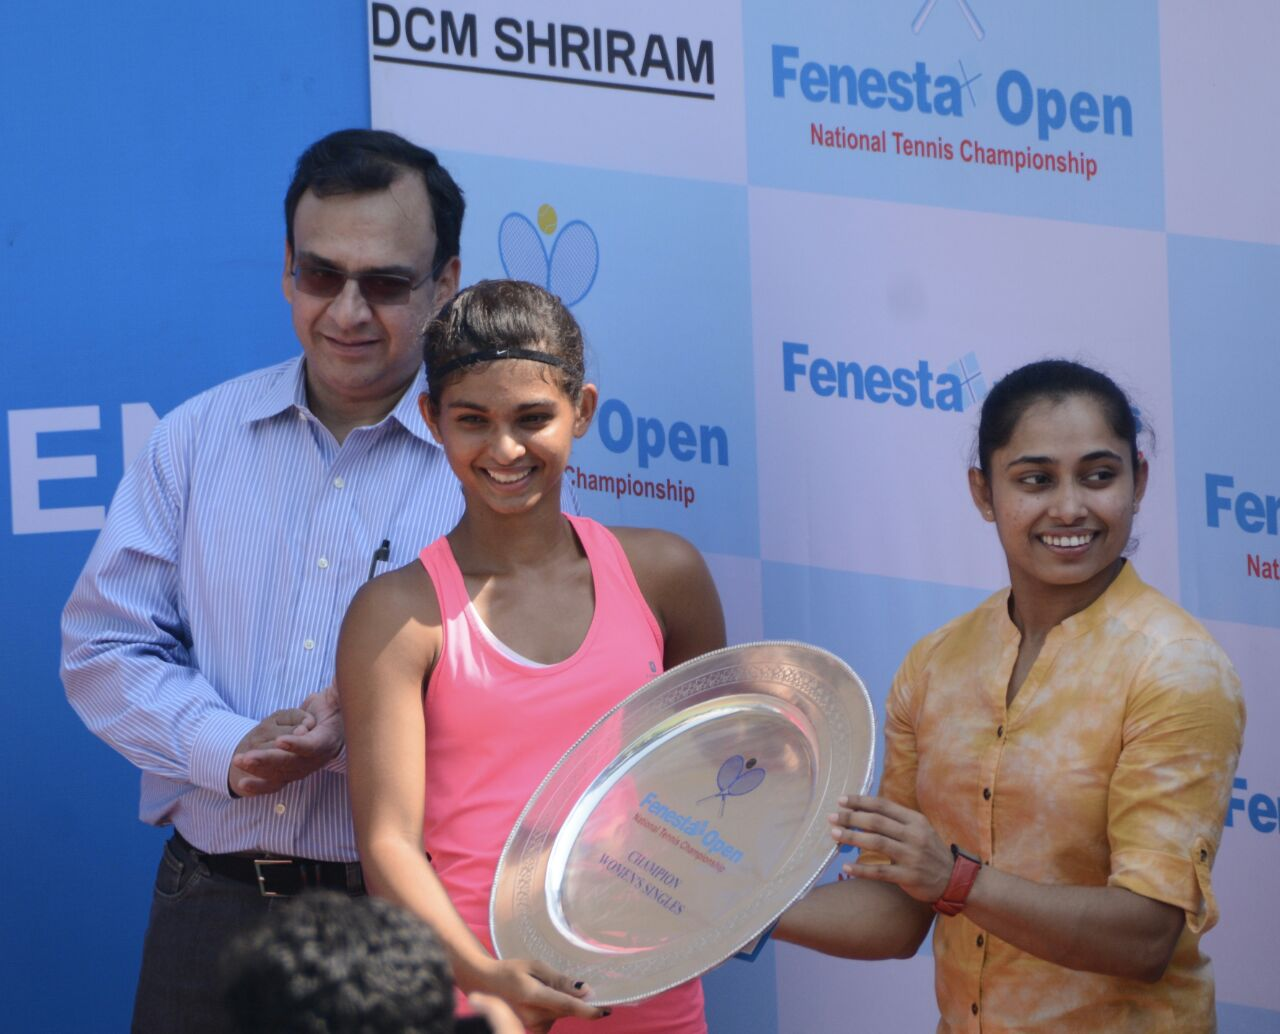 Receiving the Fenesta National Championships trophy from Dipa Karmakar. Image Credit: Mahak Jain